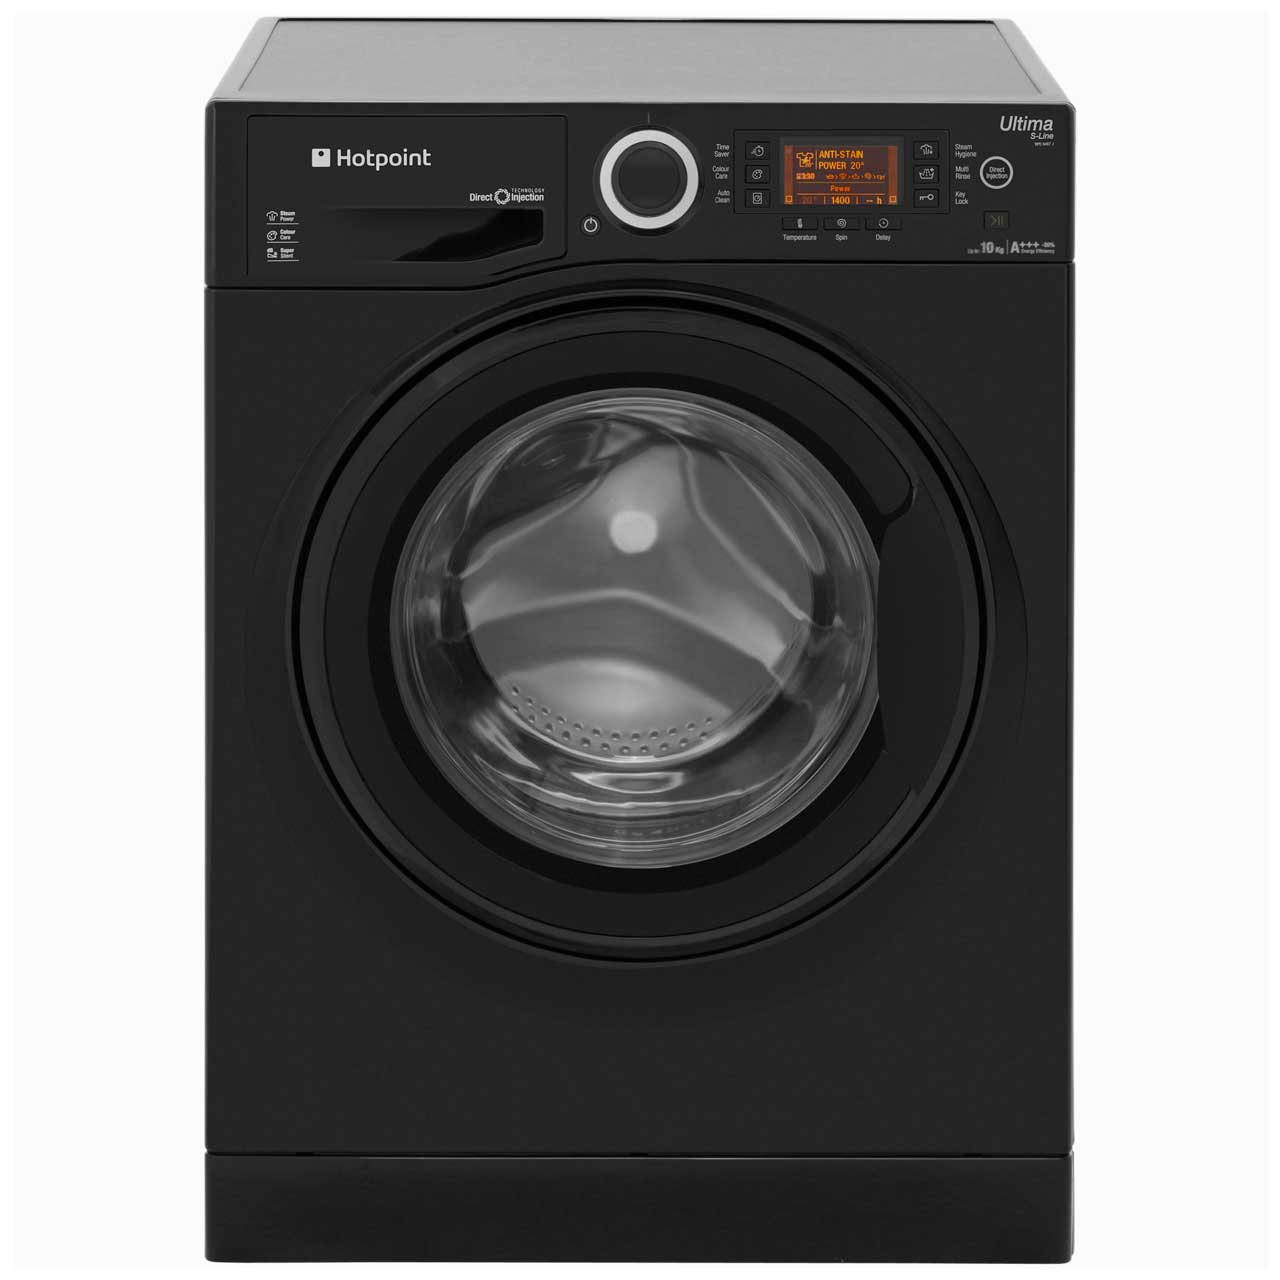 Hotpoint Ultima SLine RPD10457JKK Free Standing Washing Machine in Black